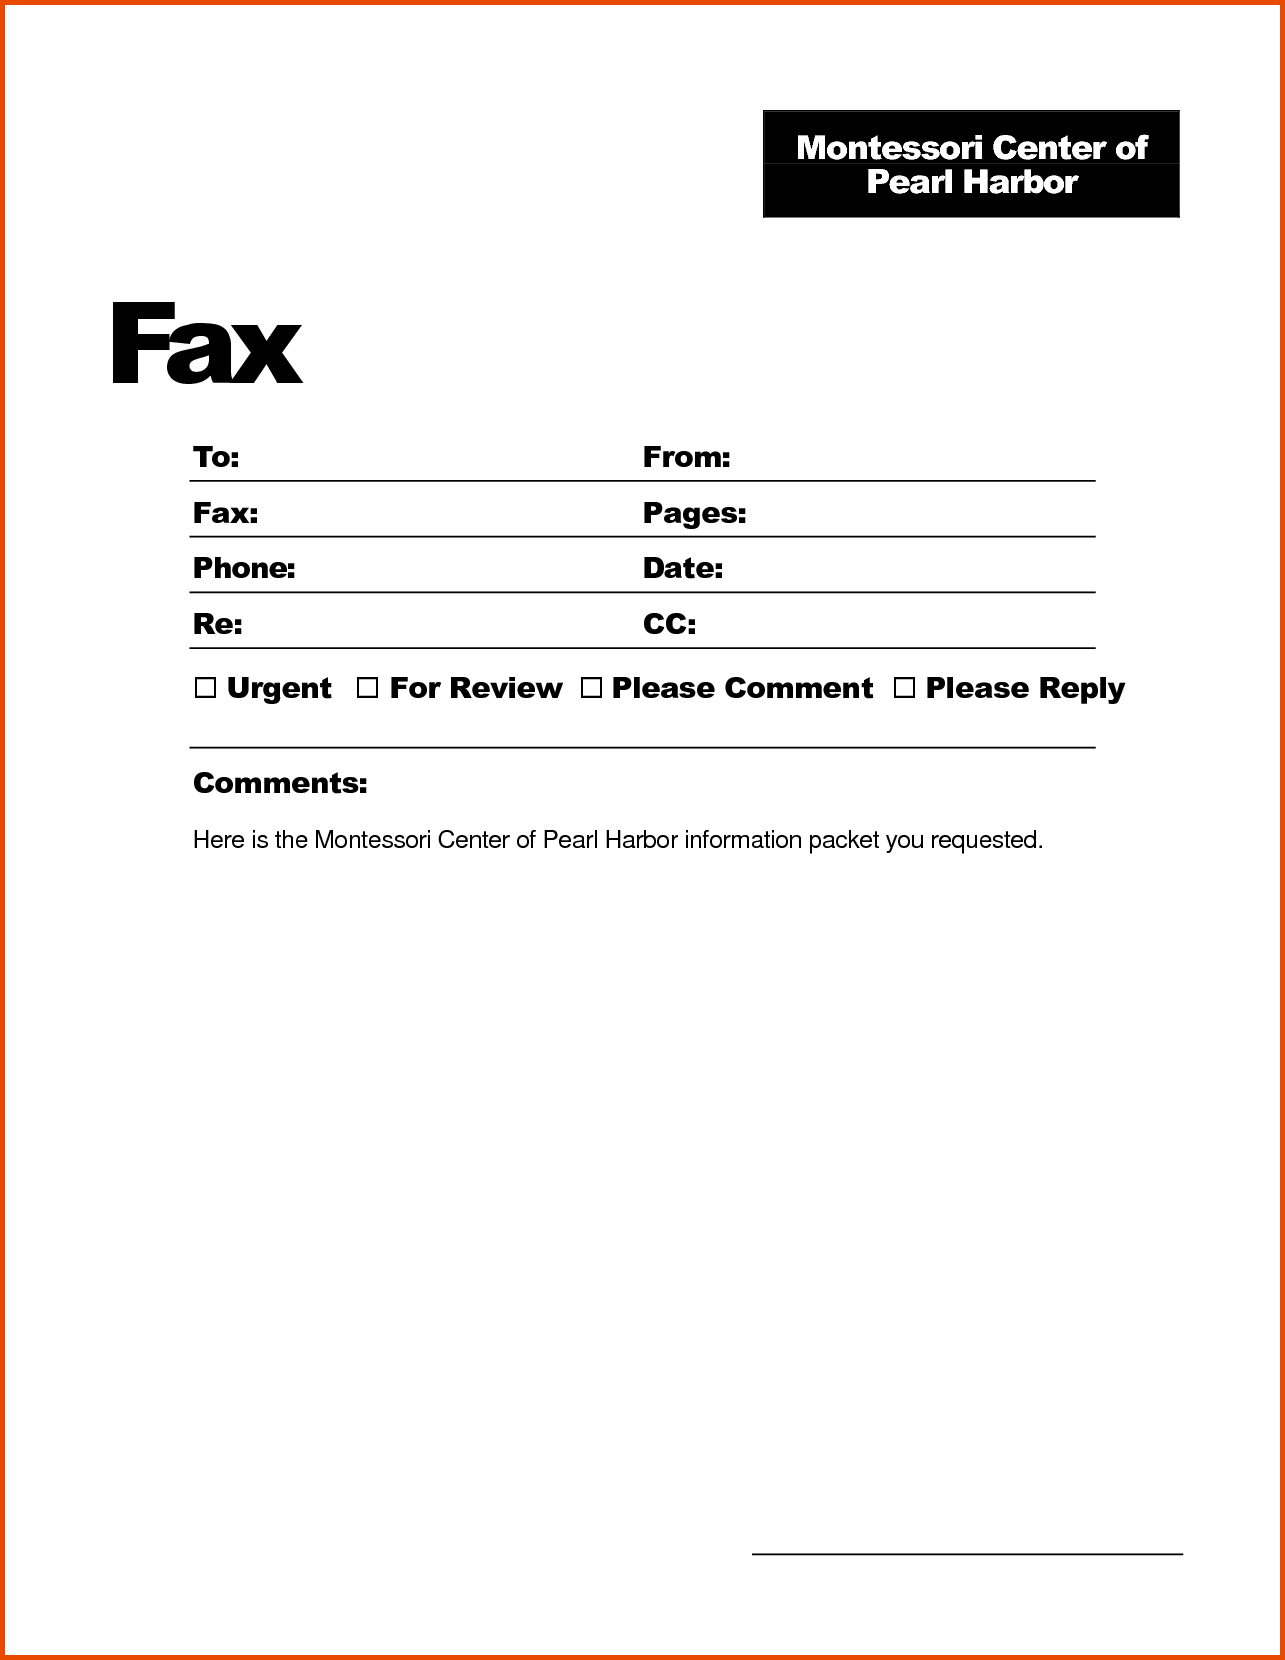 Clipart fax cover sheet. Sample to free templates